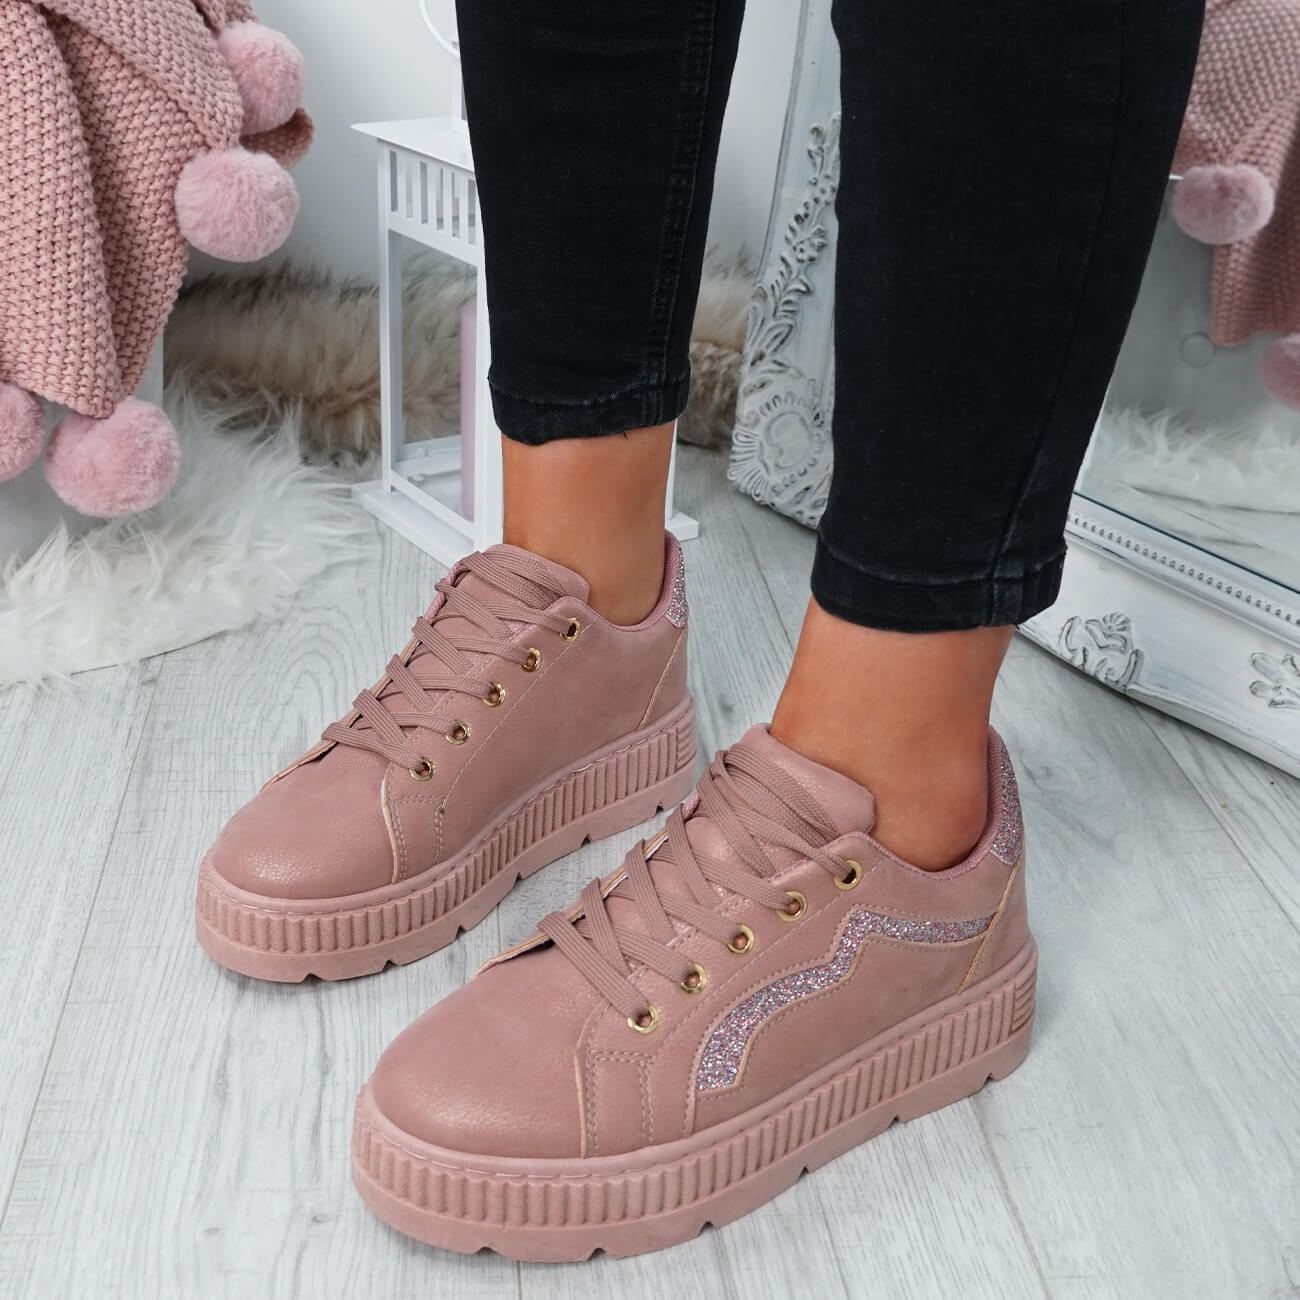 WOMENS-LADIES-LACE-UP-PLATFORM-TRAINERS-PLIMSOLL-SKATE-SNEAKERS-SHOES-SIZE thumbnail 22